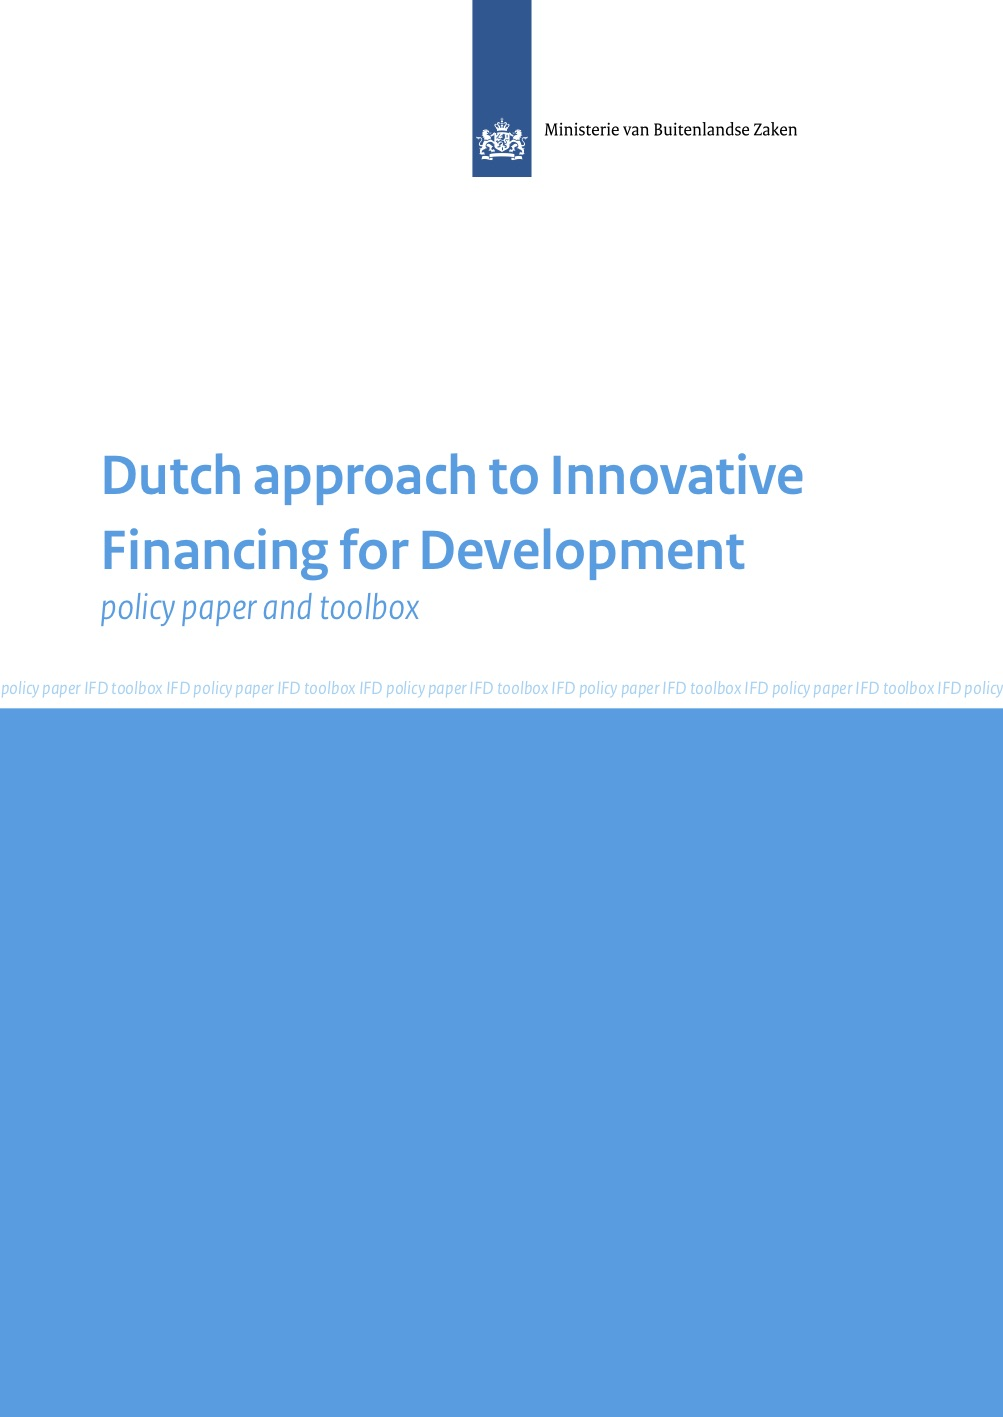 Dutch approach to Innovative Financing for Development: Policy Paper and Toolbox